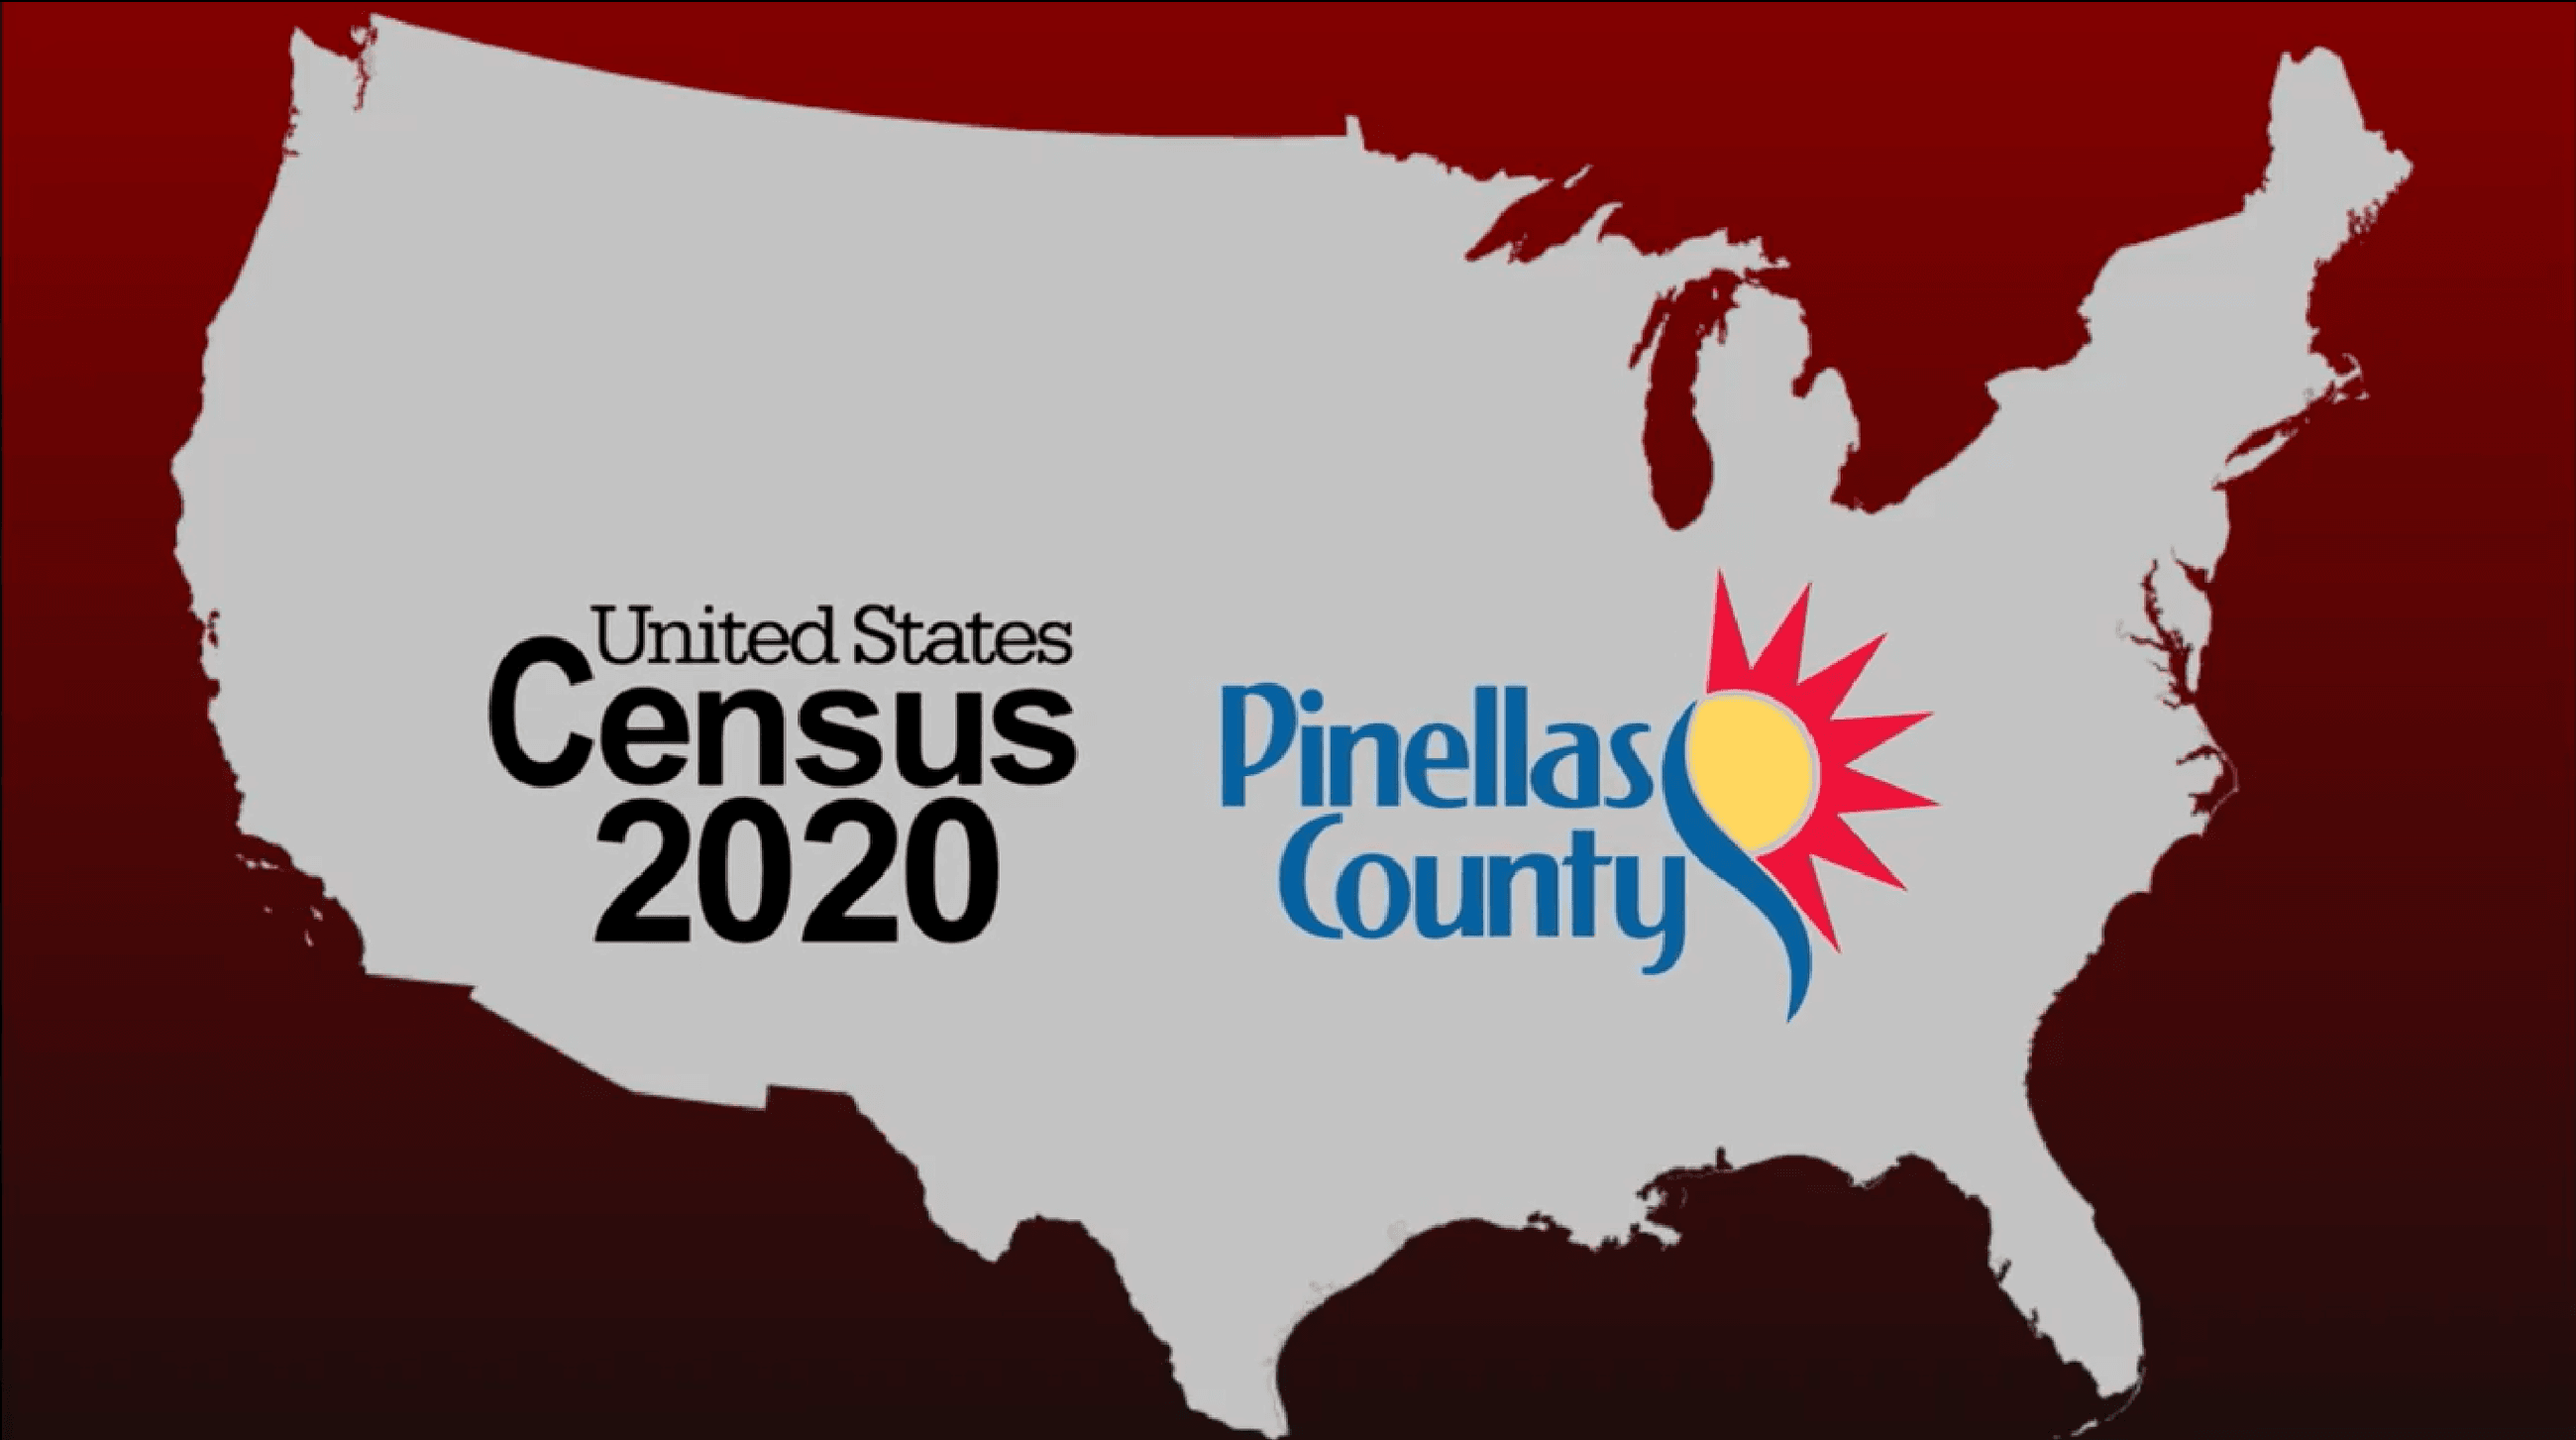 Outlined map of the United States with the text &#34United States Census 2020&#34 overtop of it, alo